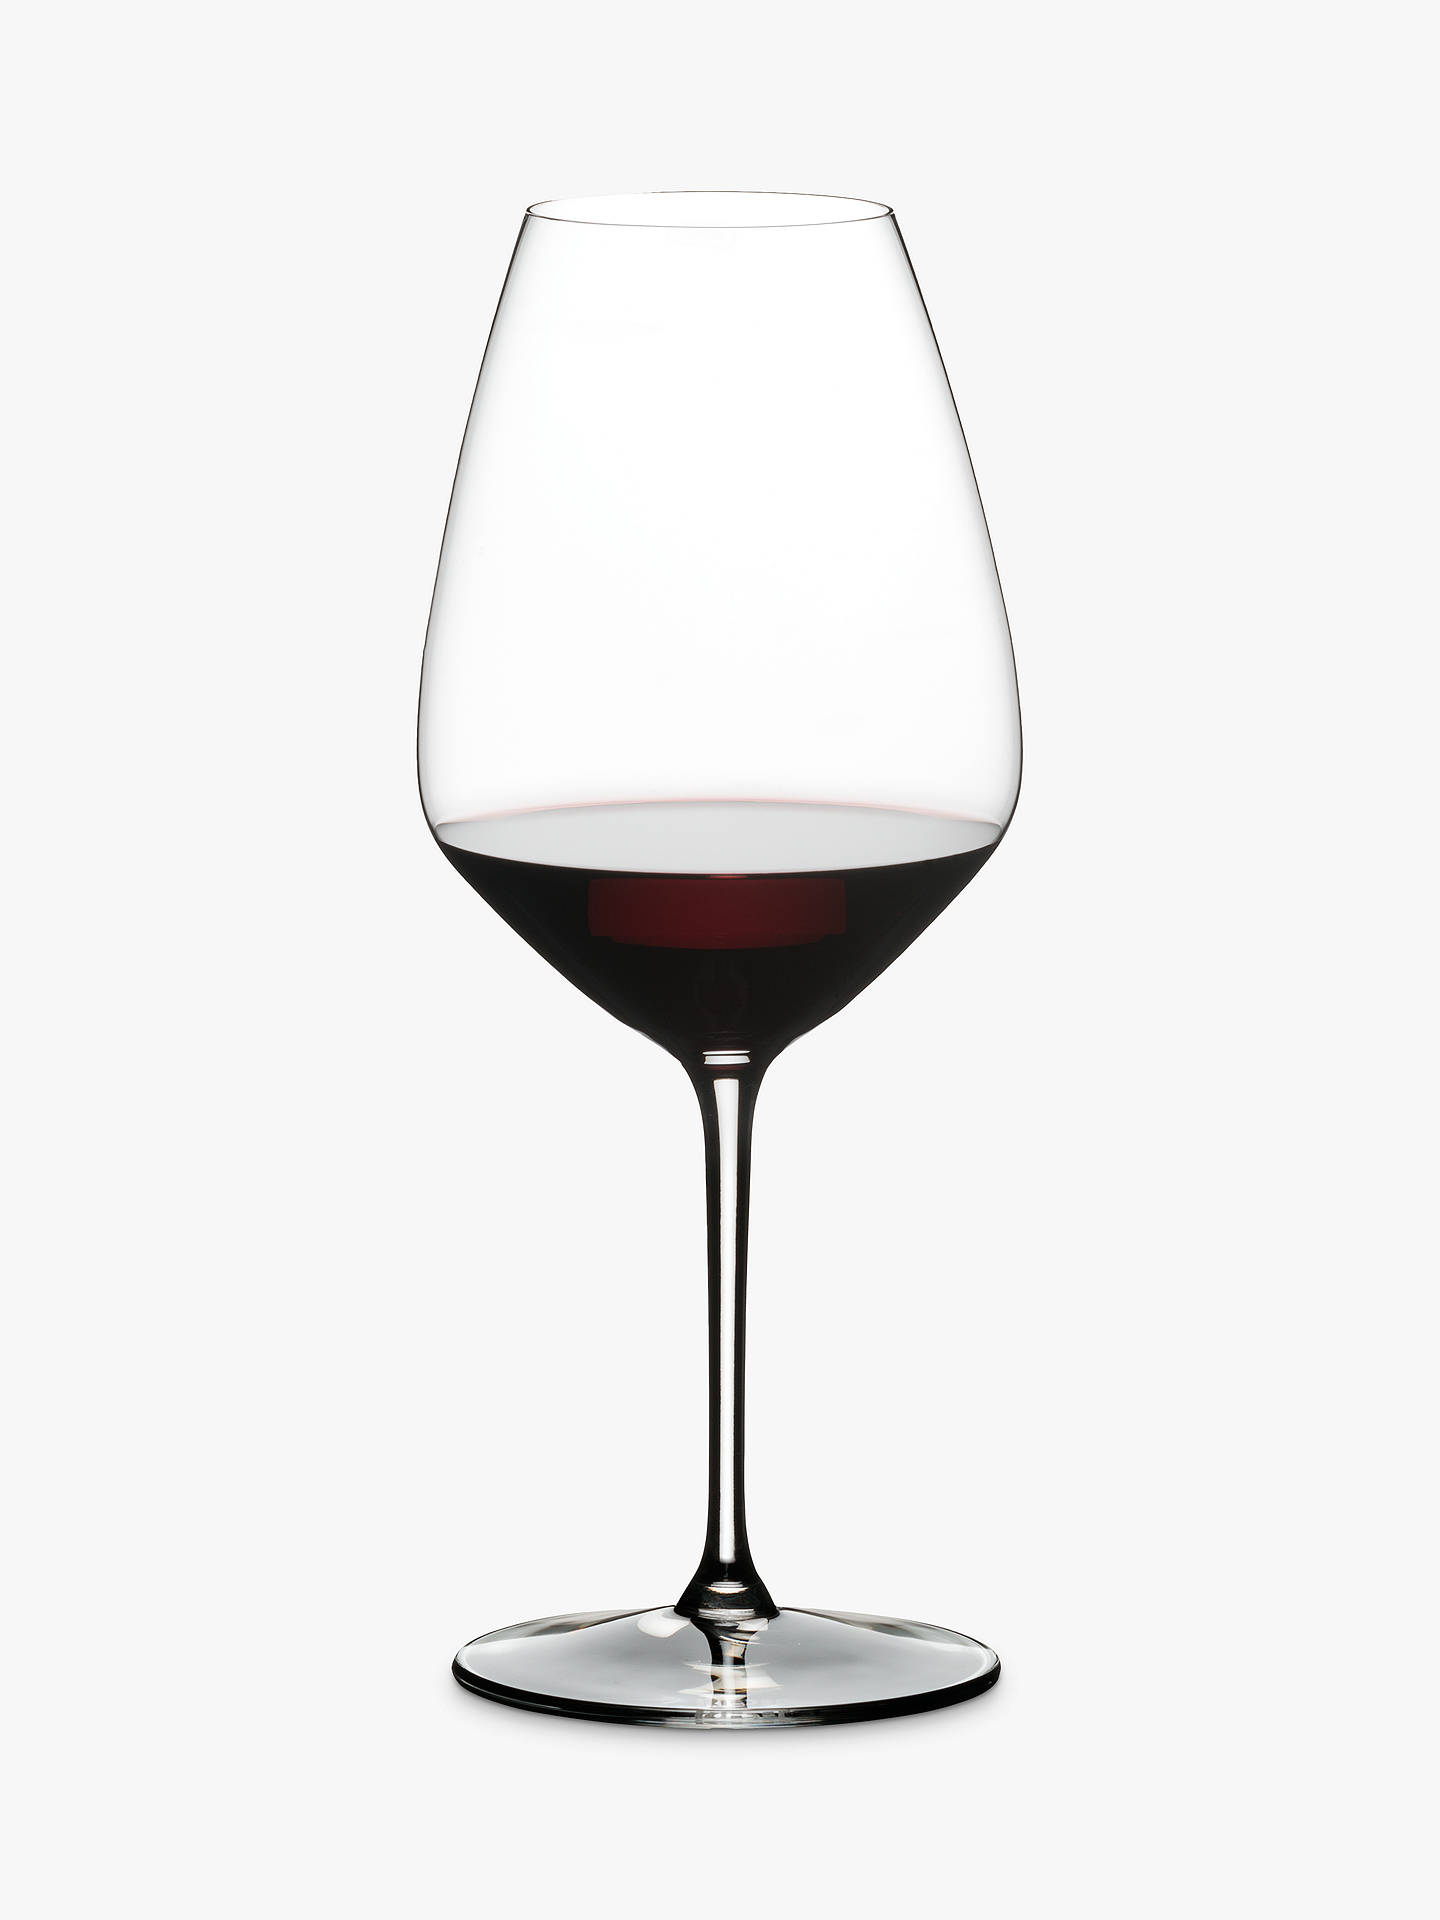 BuyRiedel See Smell Taste Shiraz / Syrah Crystal Wine Glass, Set of 2, 709ml, Clear Online at johnlewis.com